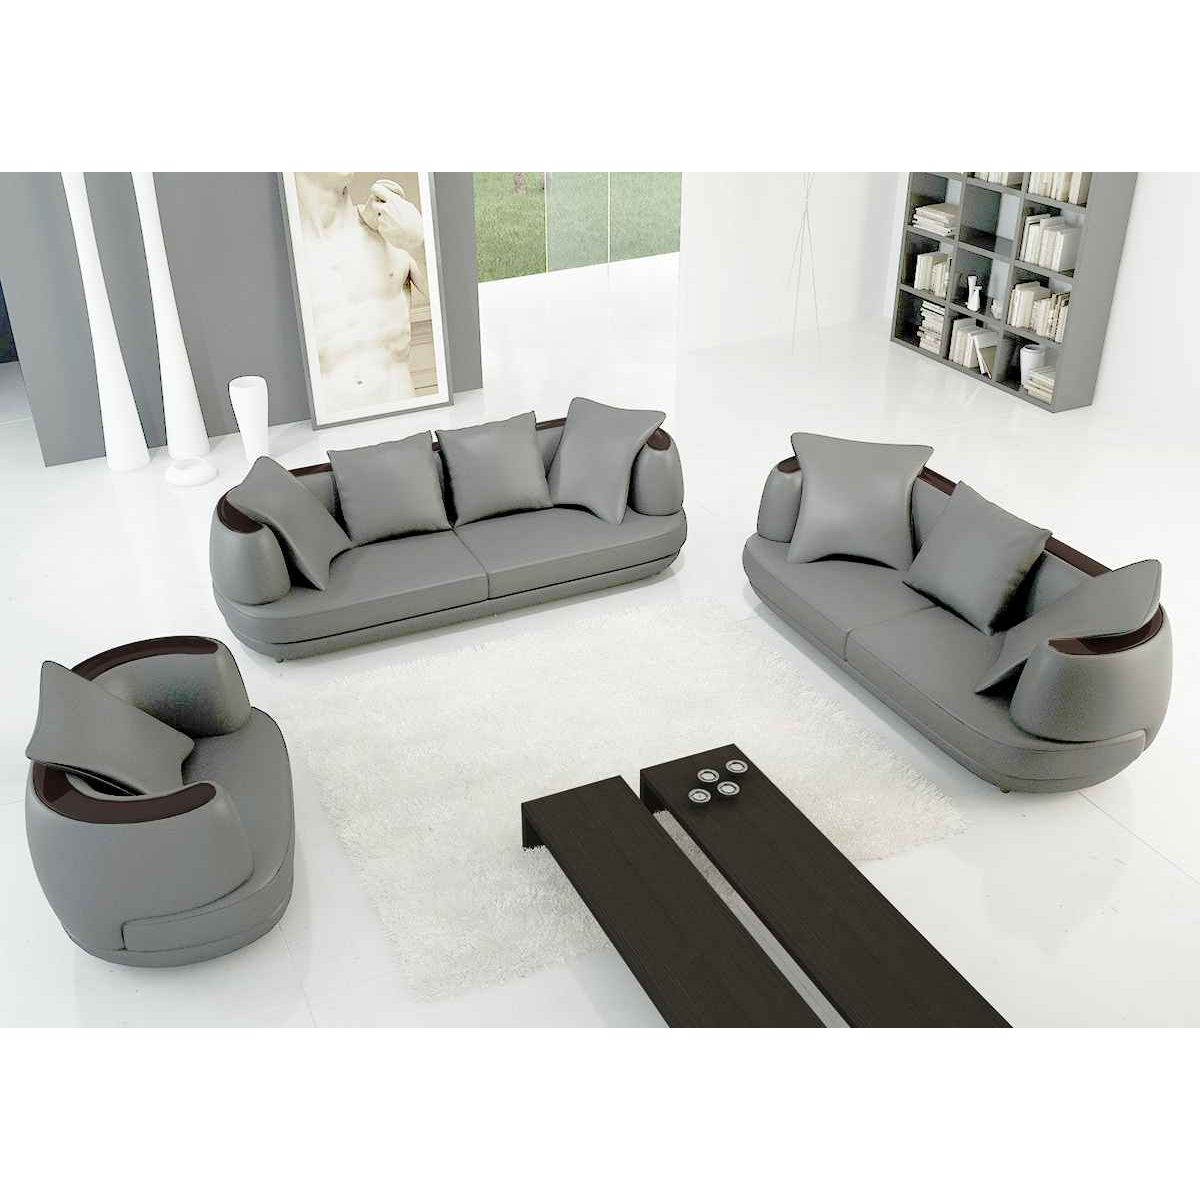 Deco In Paris Ensemble Canape 3 2 1 Places En Cuir Gris Clair Ryga